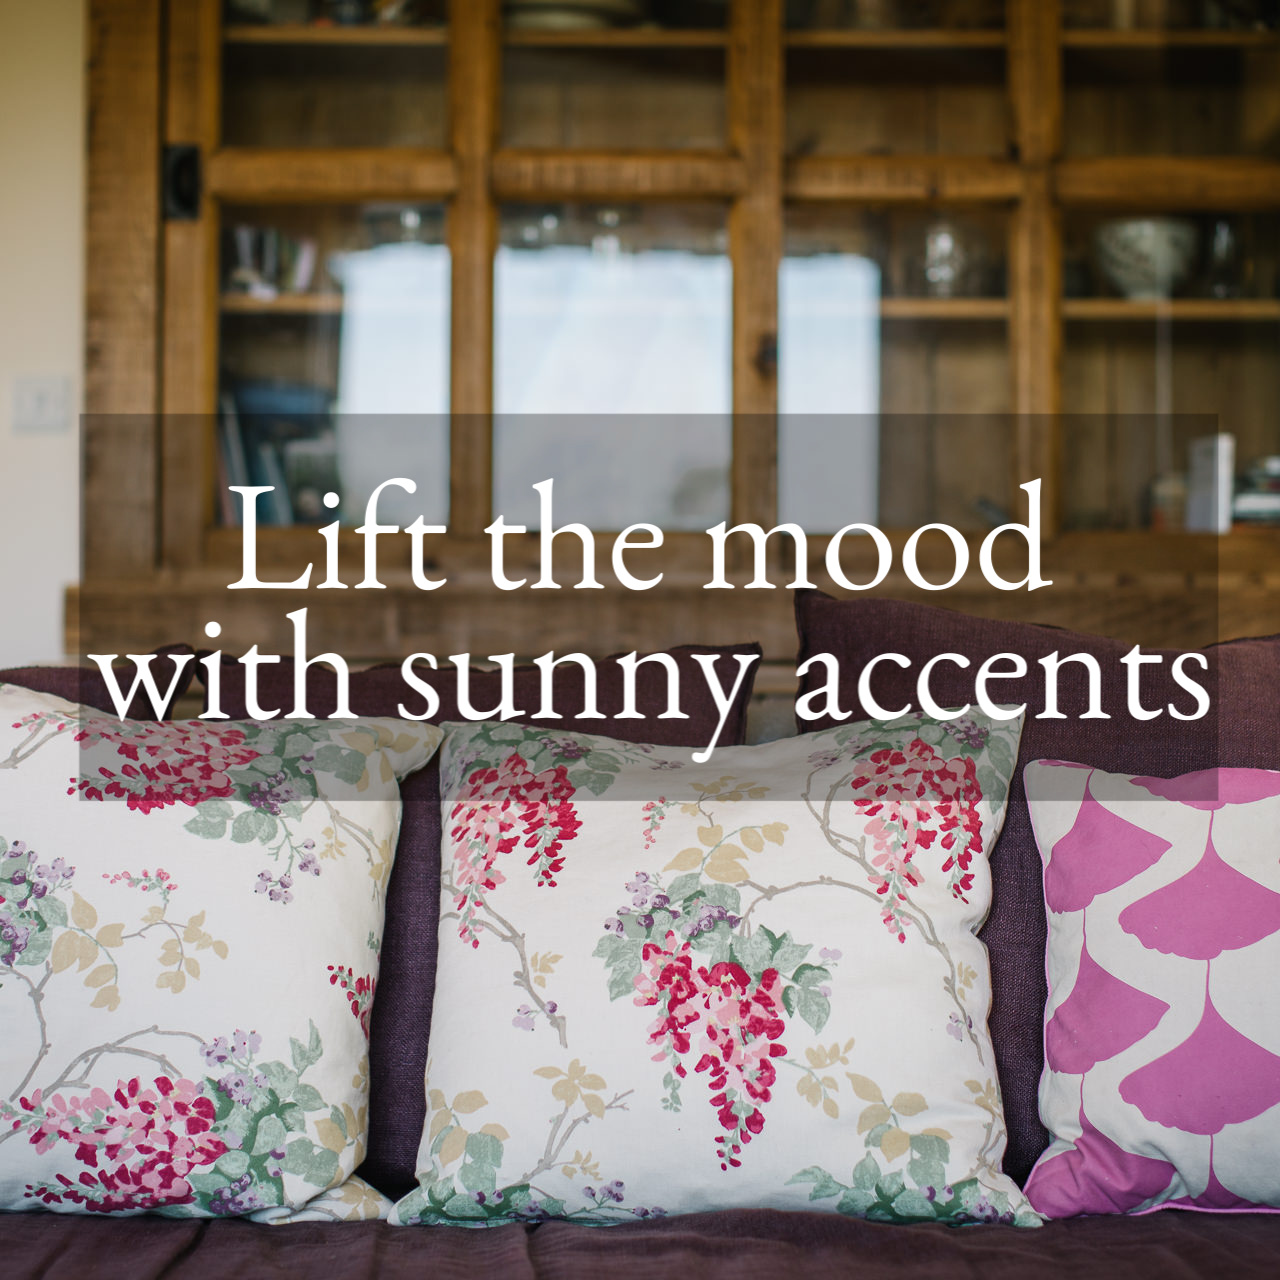 tg2-lift-the-mood-with-sunny-accents